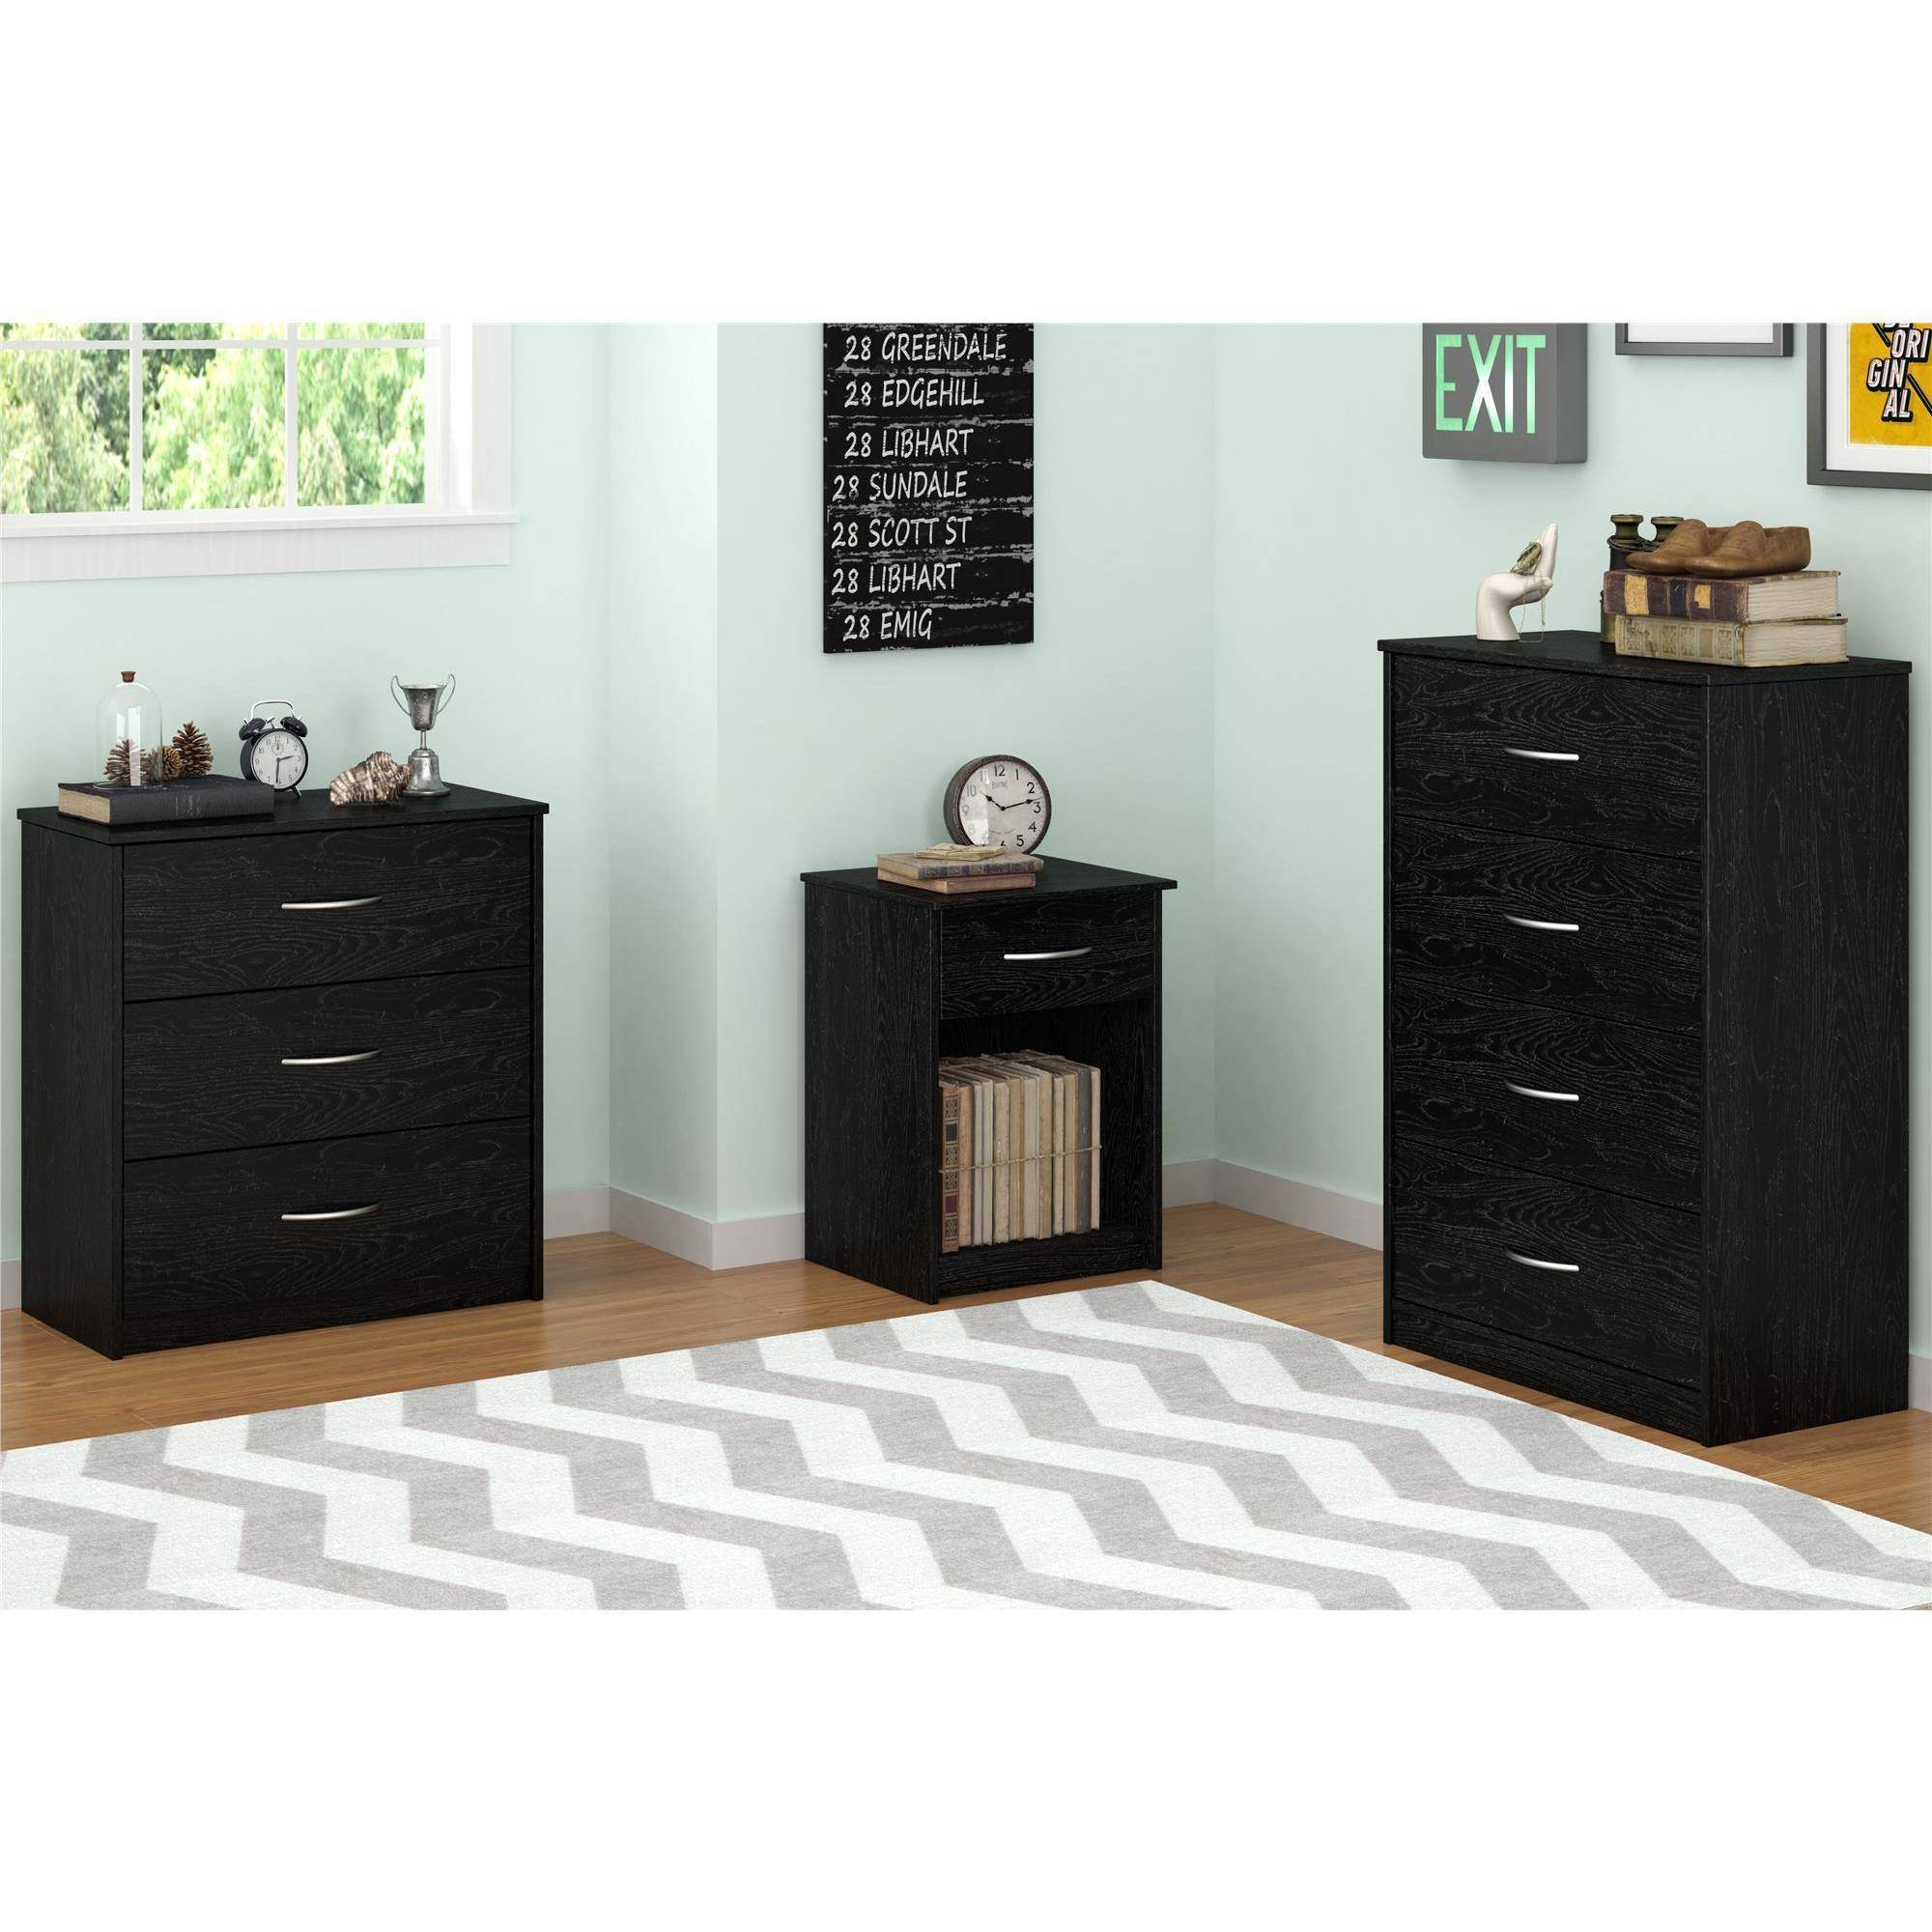 dp dresser high home chest kitchen gloss black drawer lexi uk co amazon drawers